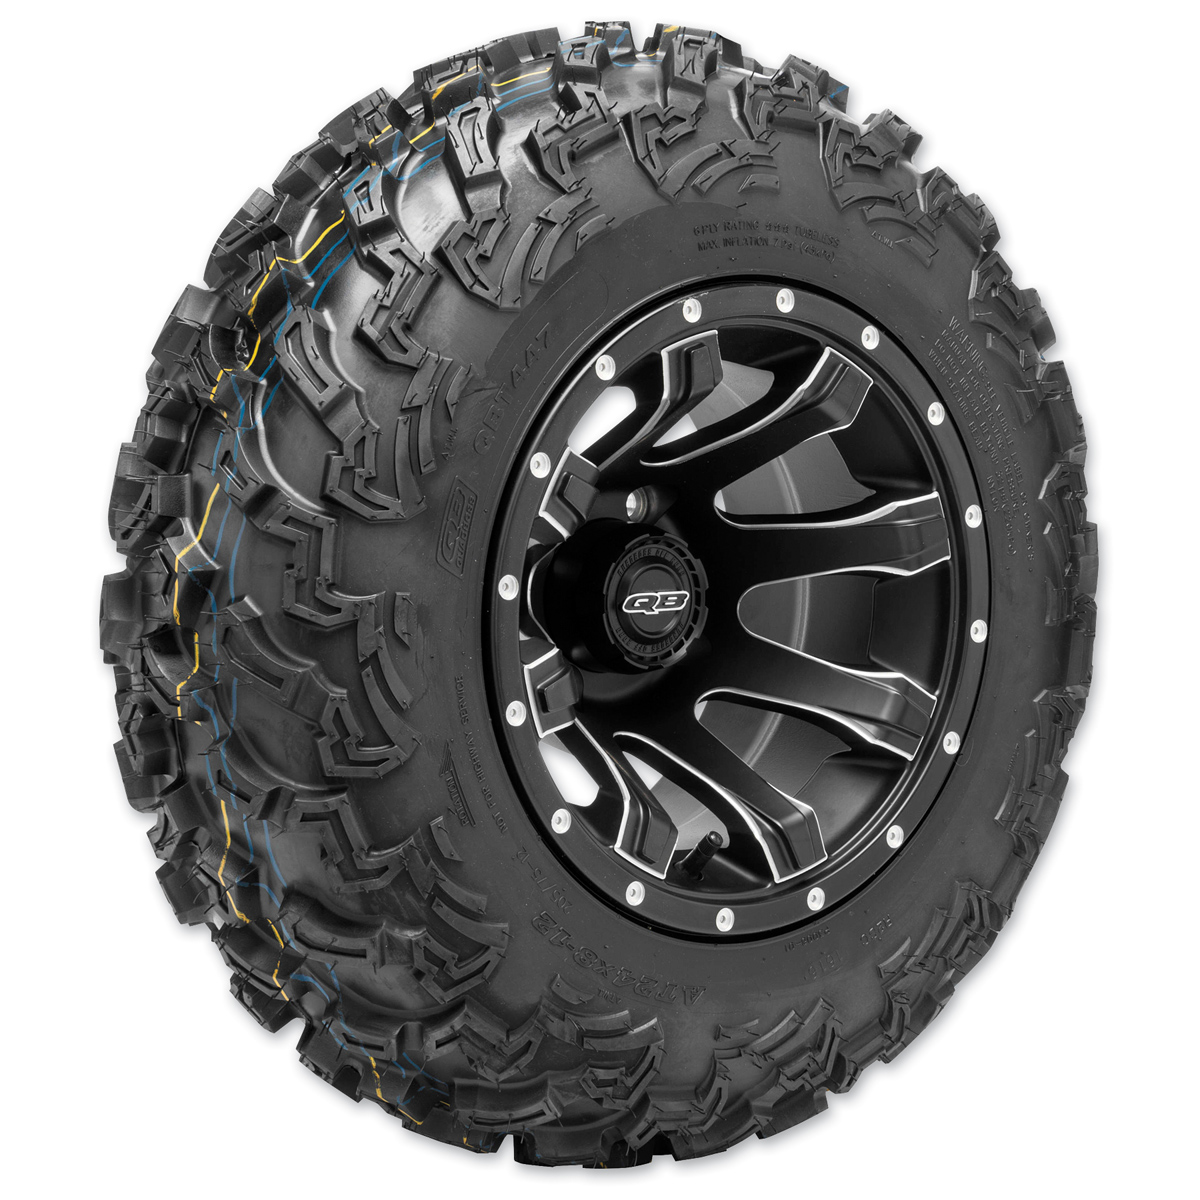 Buy Michelin Commander II Motorcycle Tire Cruiser Rear - / 81H: Wheels & Tires - newsubsteam.ml FREE DELIVERY possible on eligible purchases.